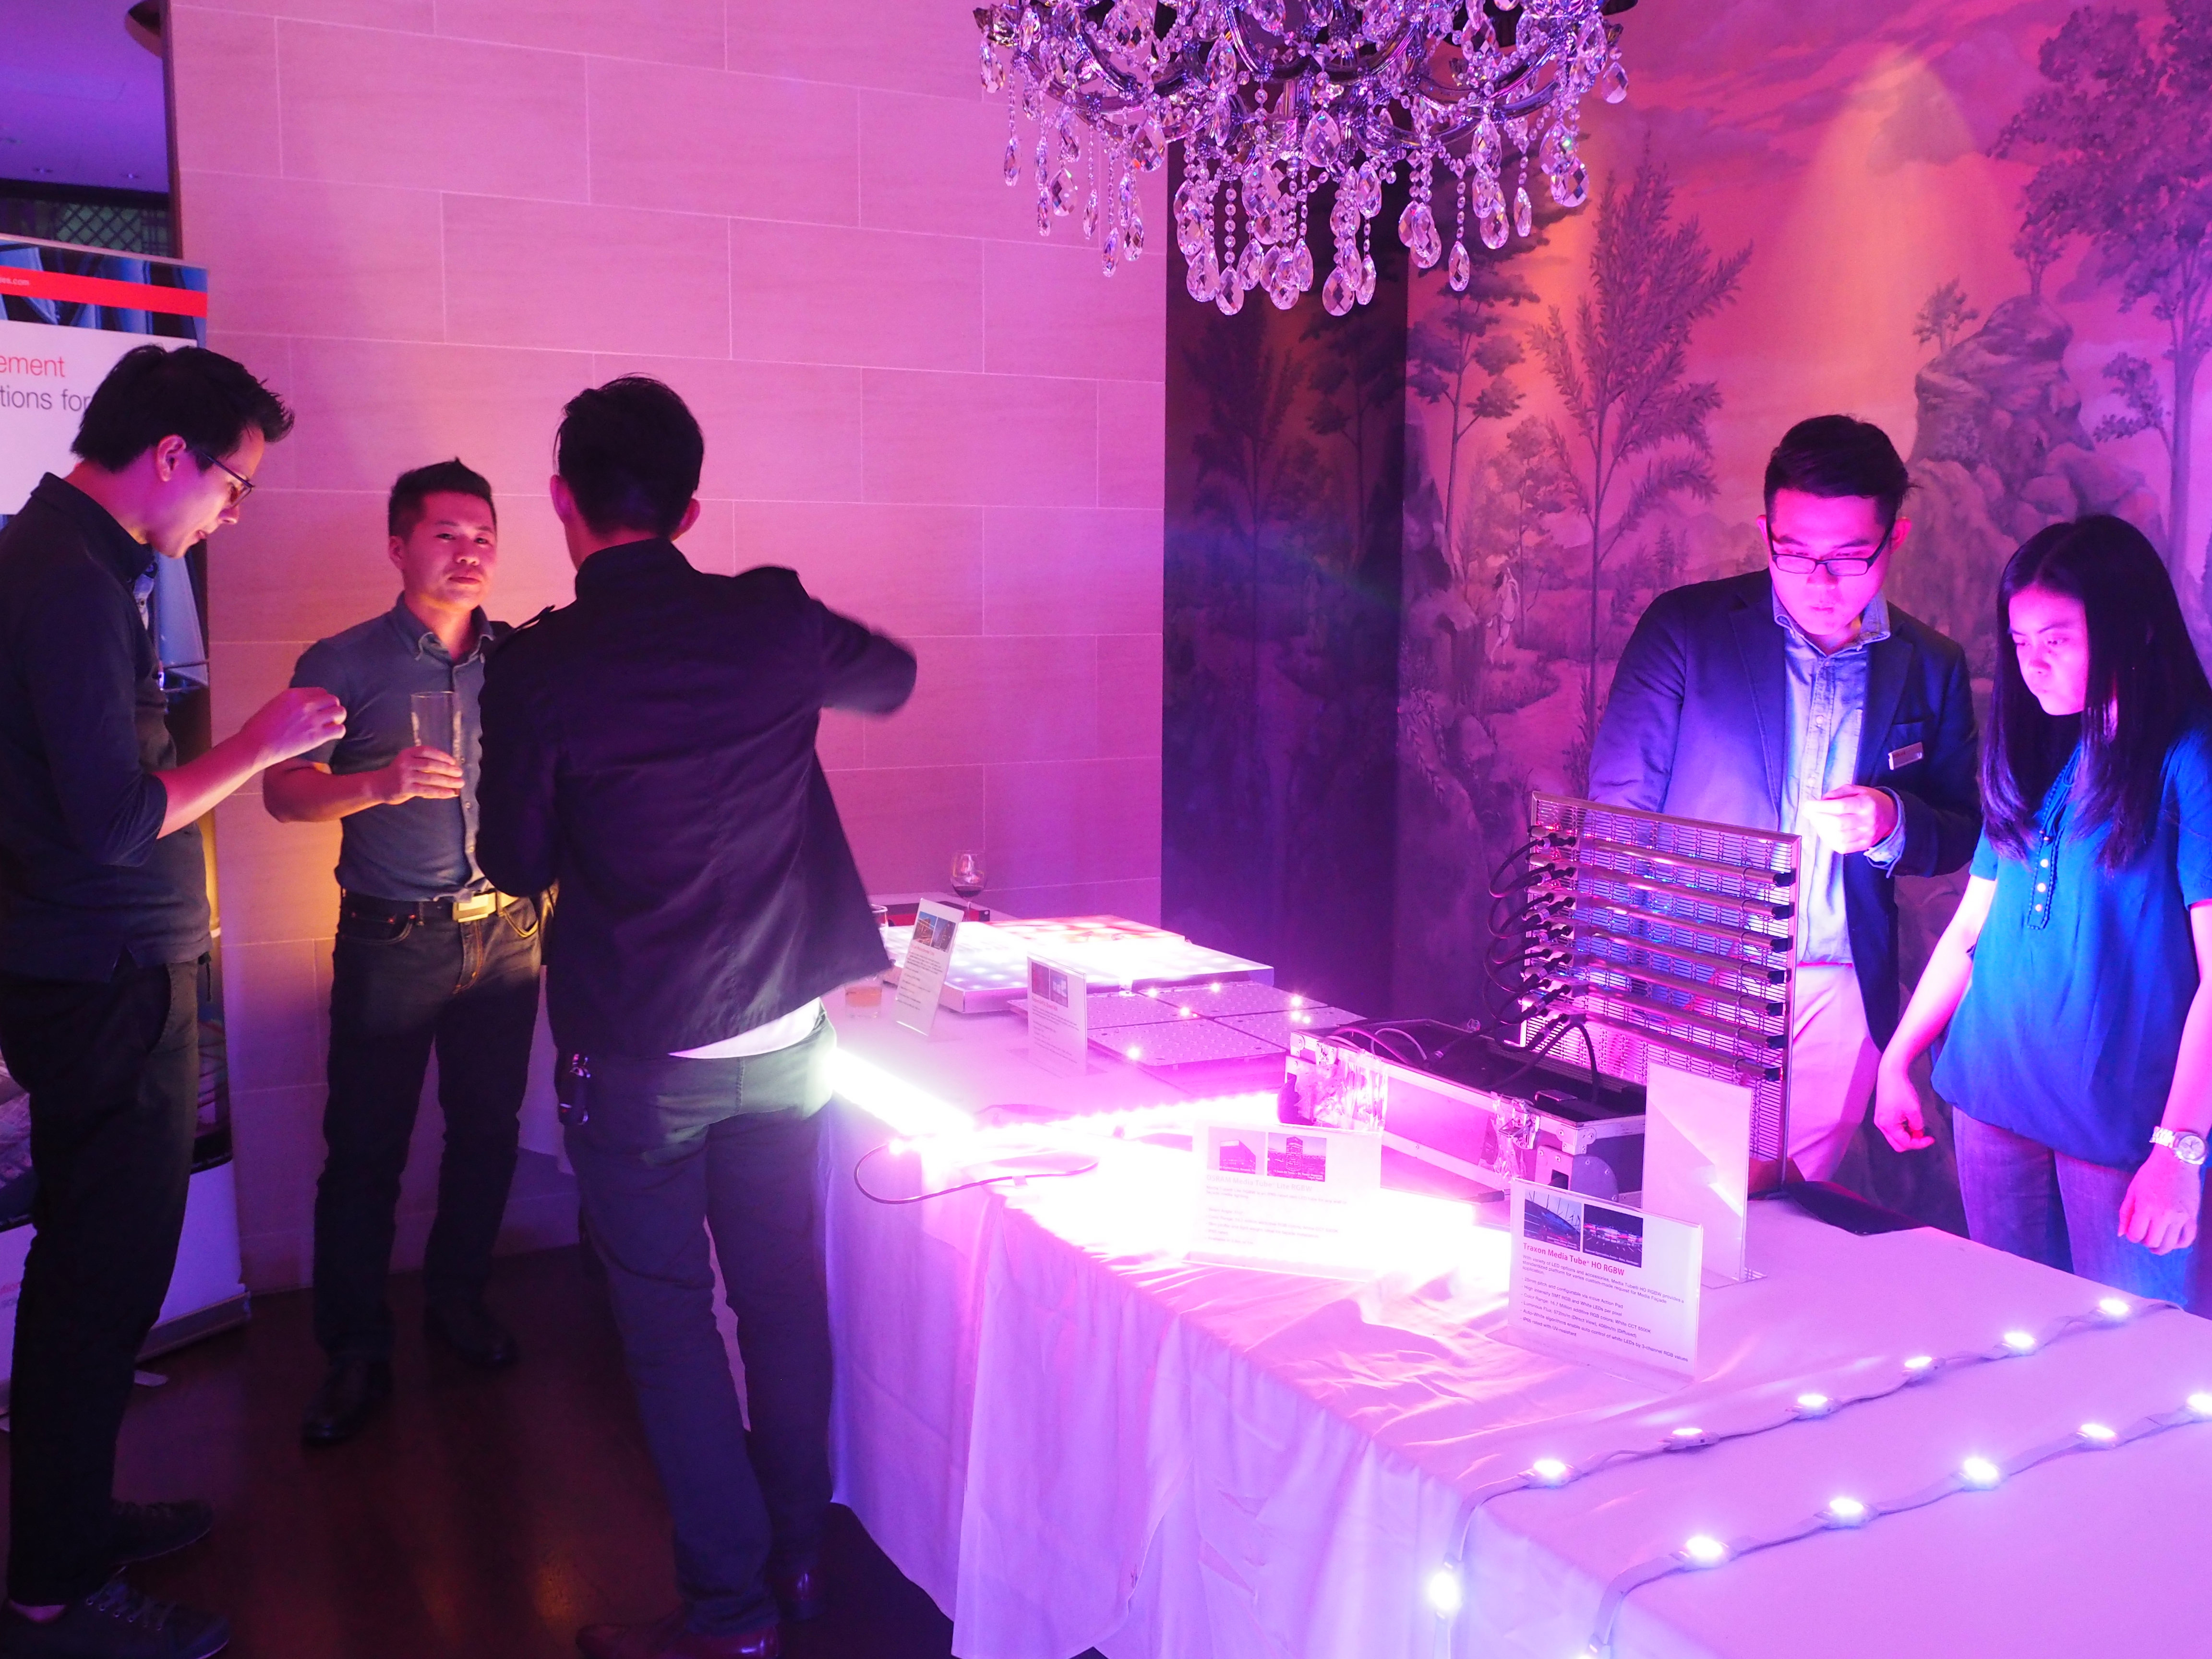 Product managers demonstrate and introduce the innovative lighting products to the customers during the event. & Lighting specifiers inspiration in Singapore u2022 OSRAM LS APAC ... azcodes.com